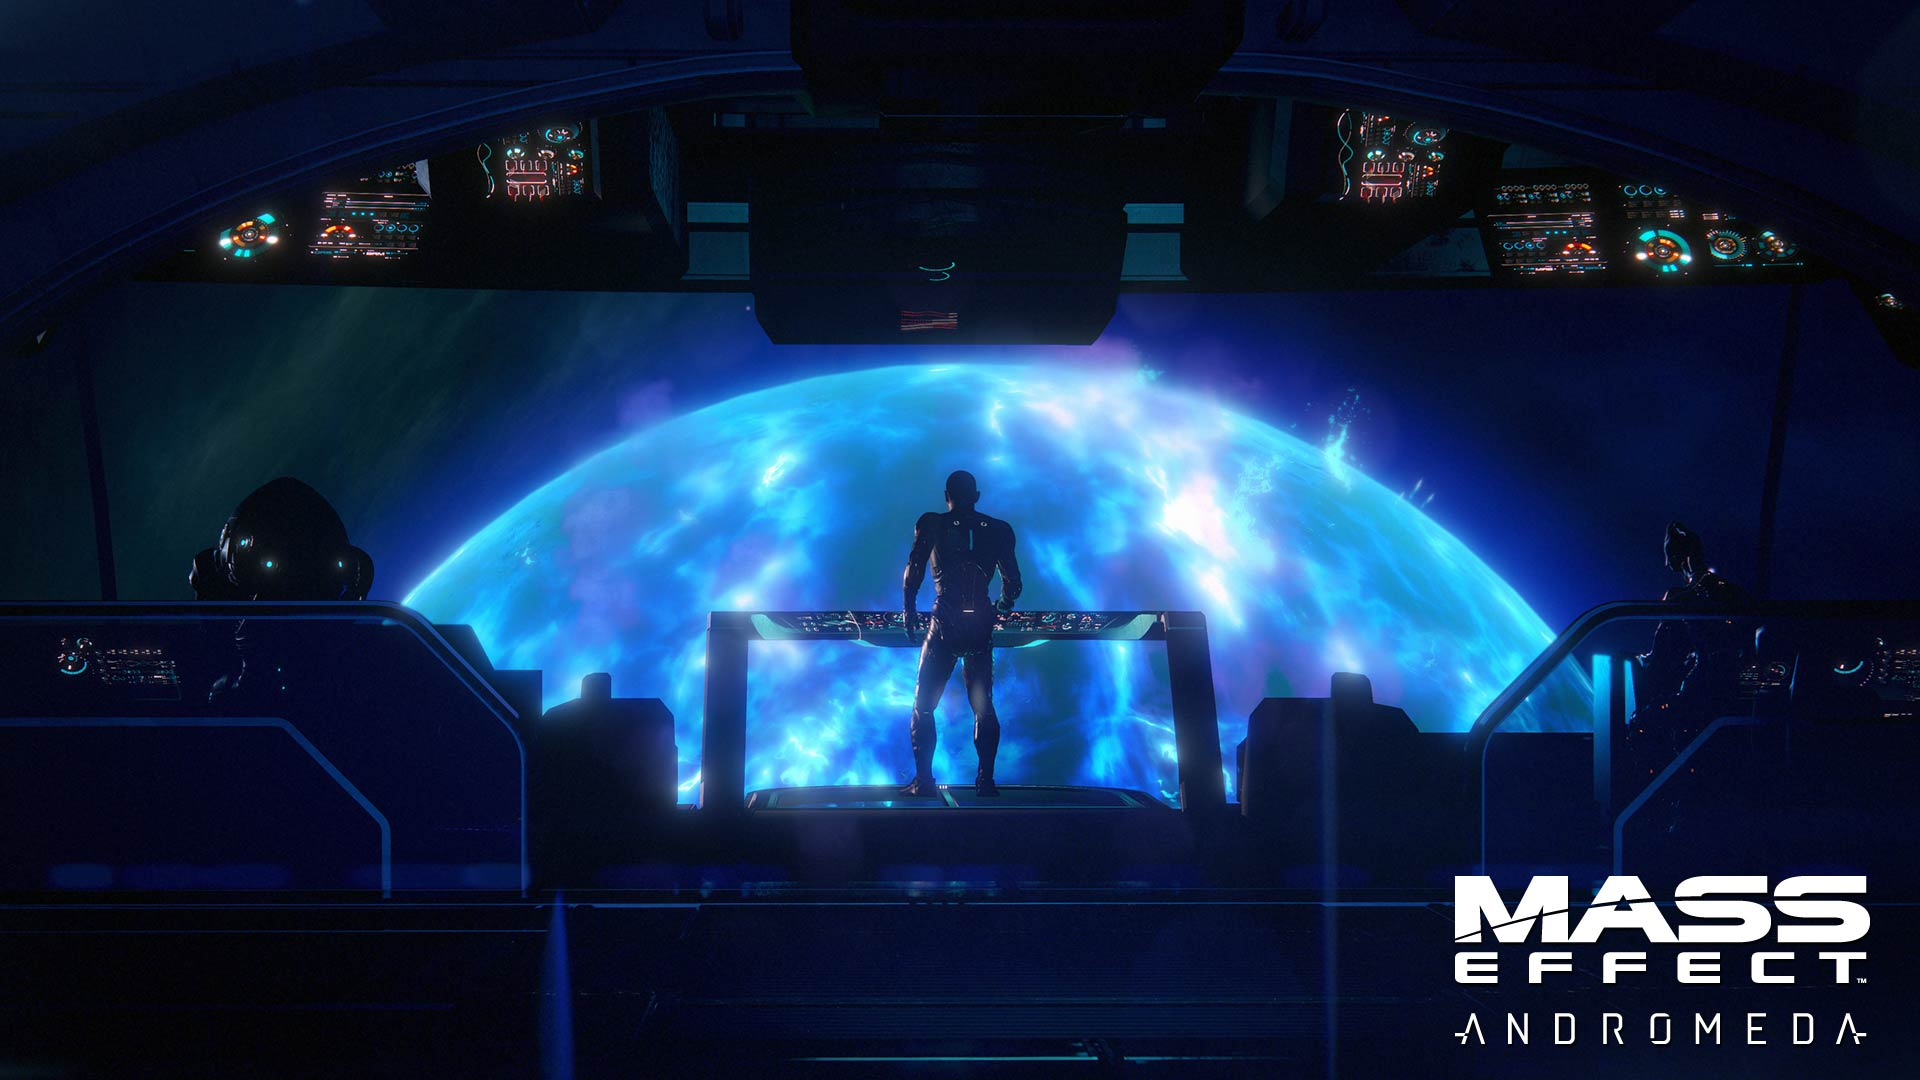 MASS EFFECT: ANDROMEDA Finally Has an Official Release Date